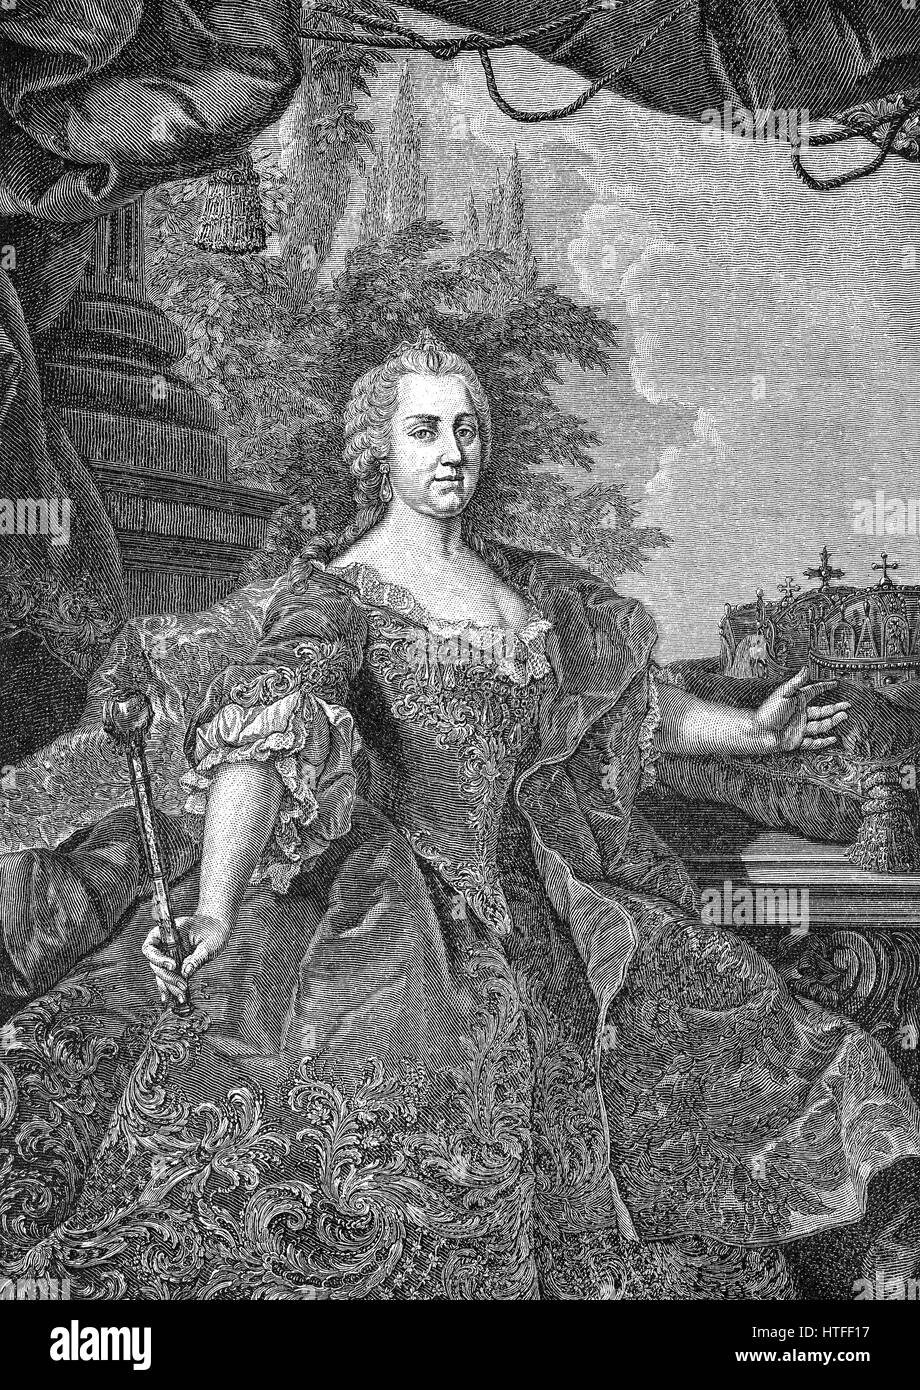 Maria Theresa of Austria, 1717 - 1780, Archduchess of Austria and Queen of Hungary, Croatia and Bohemia - Stock Image